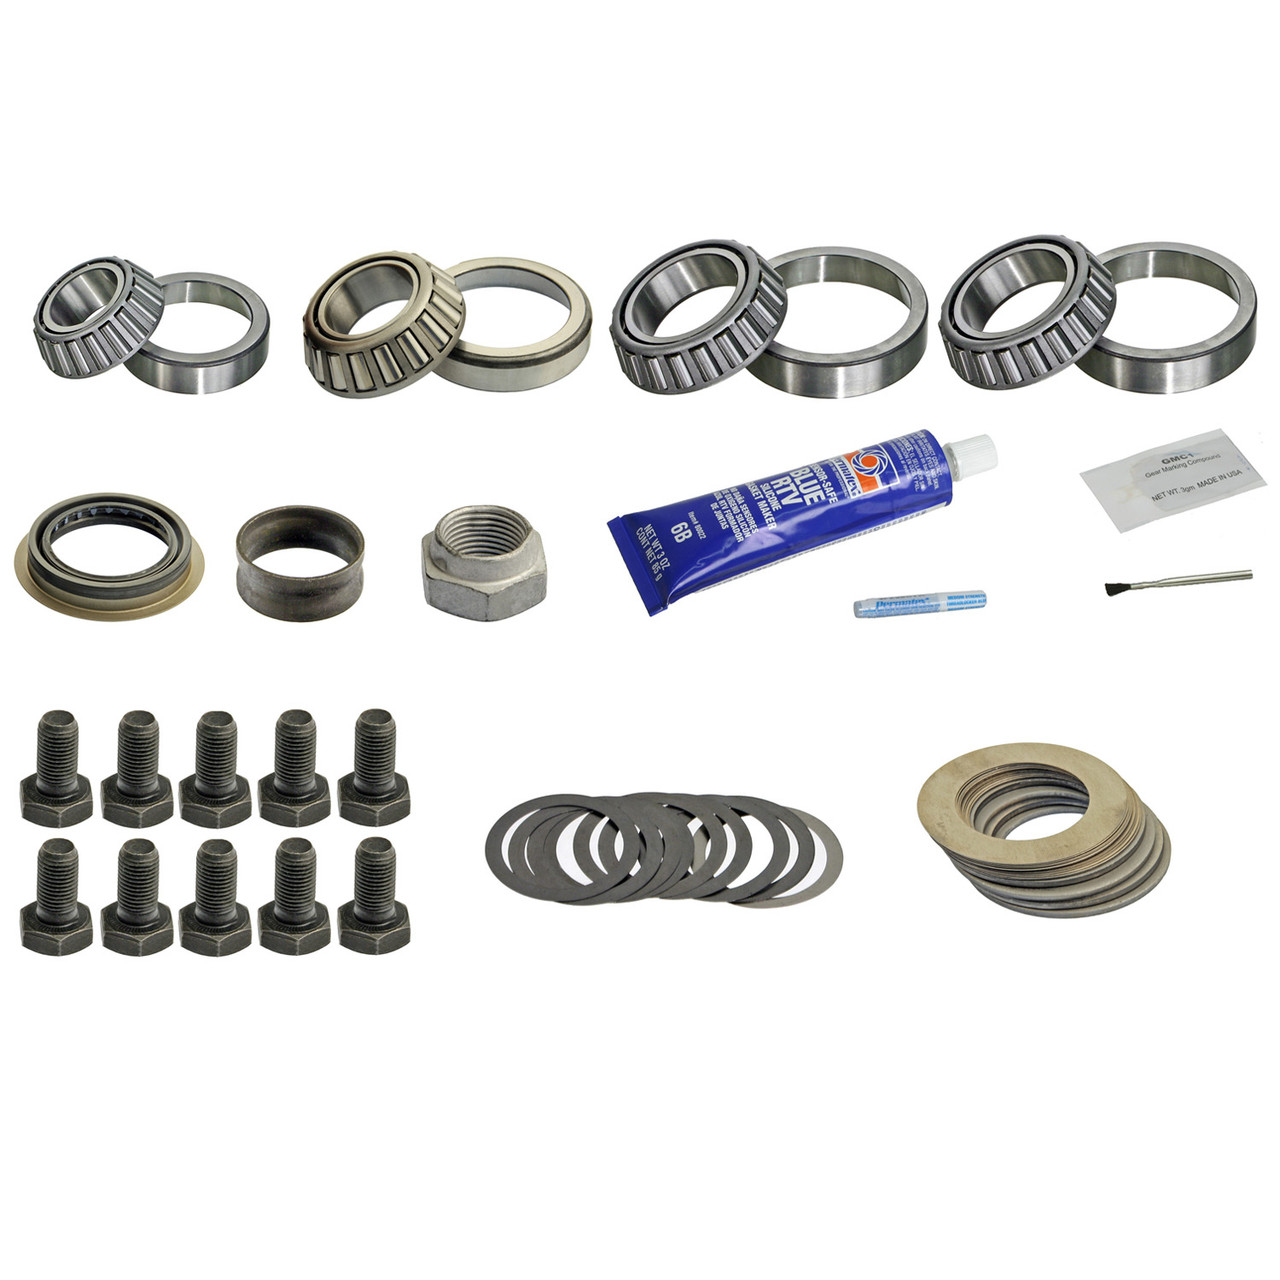 DRK321CMK GM 8 5 8 6 Master Timken Differential Bearing Kit '99-'08